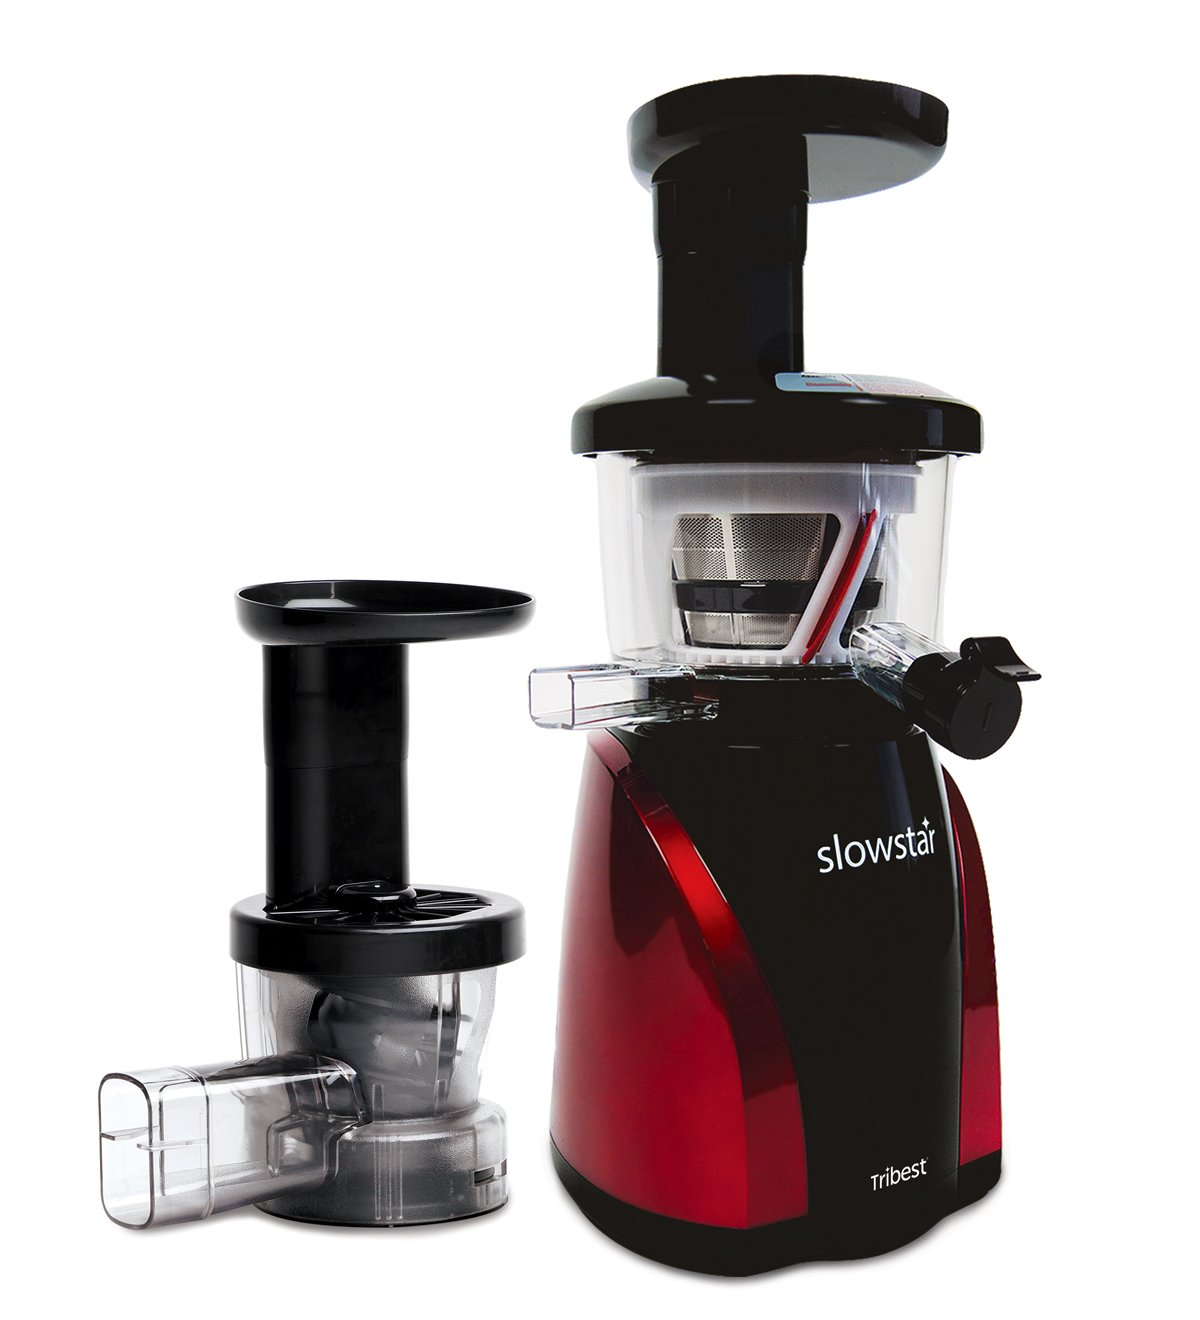 Tribest Slowstar Vertical Masticating Juicer Black Friday Deals 2021